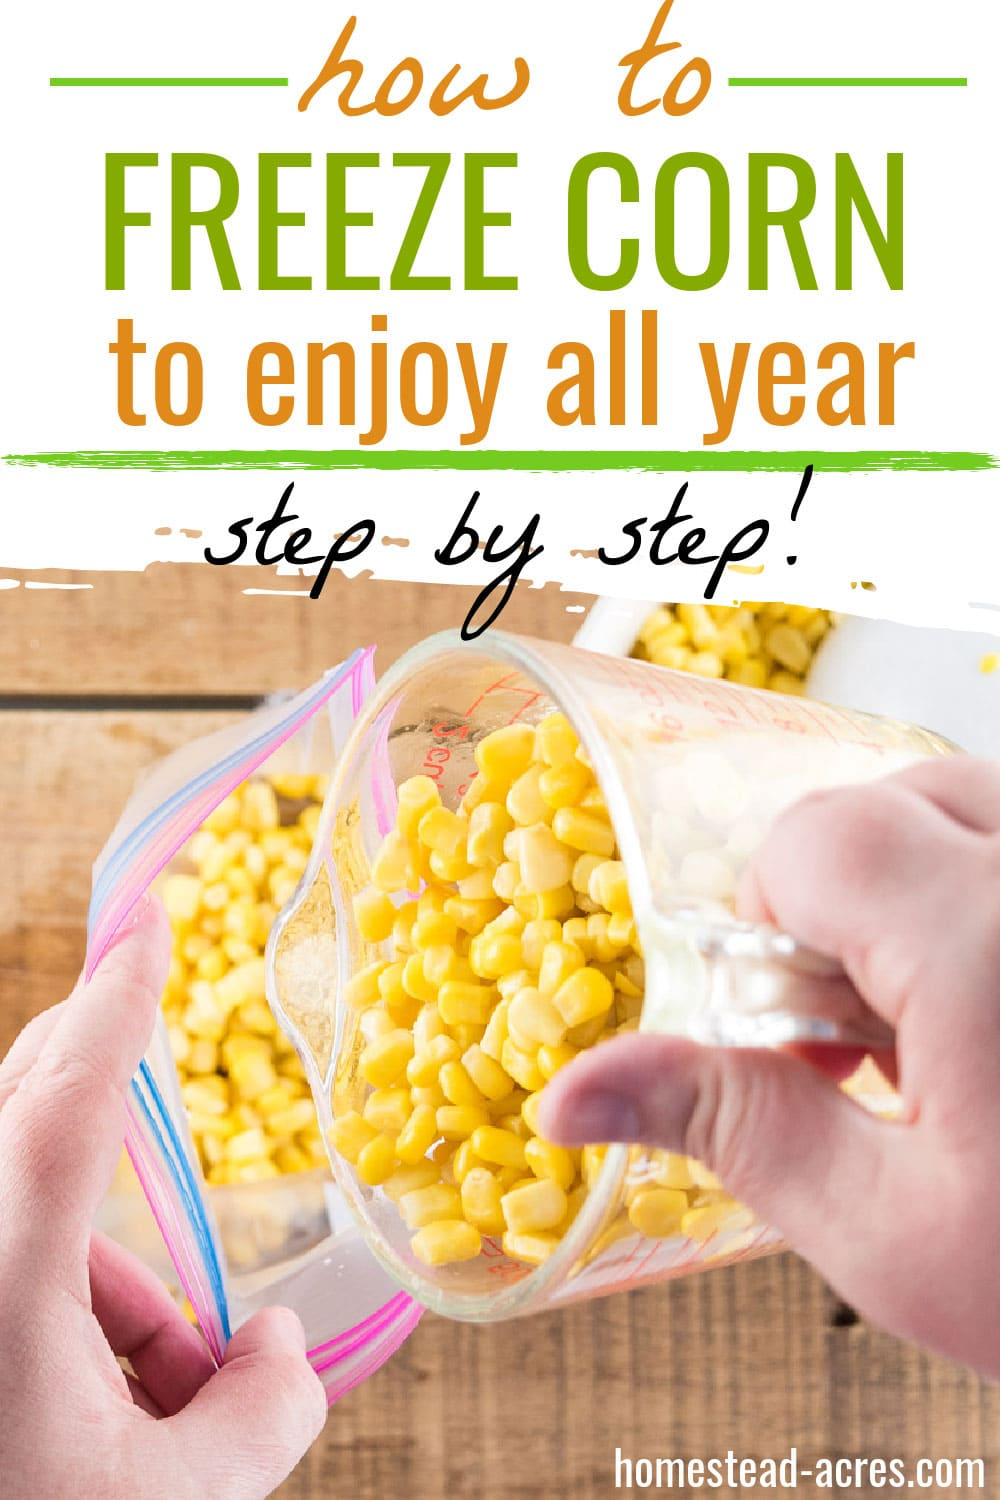 Pouring blanched corn into a freezer bag. Text overlay says How To Freeze Corn To Enjoy All Year Step By Step.